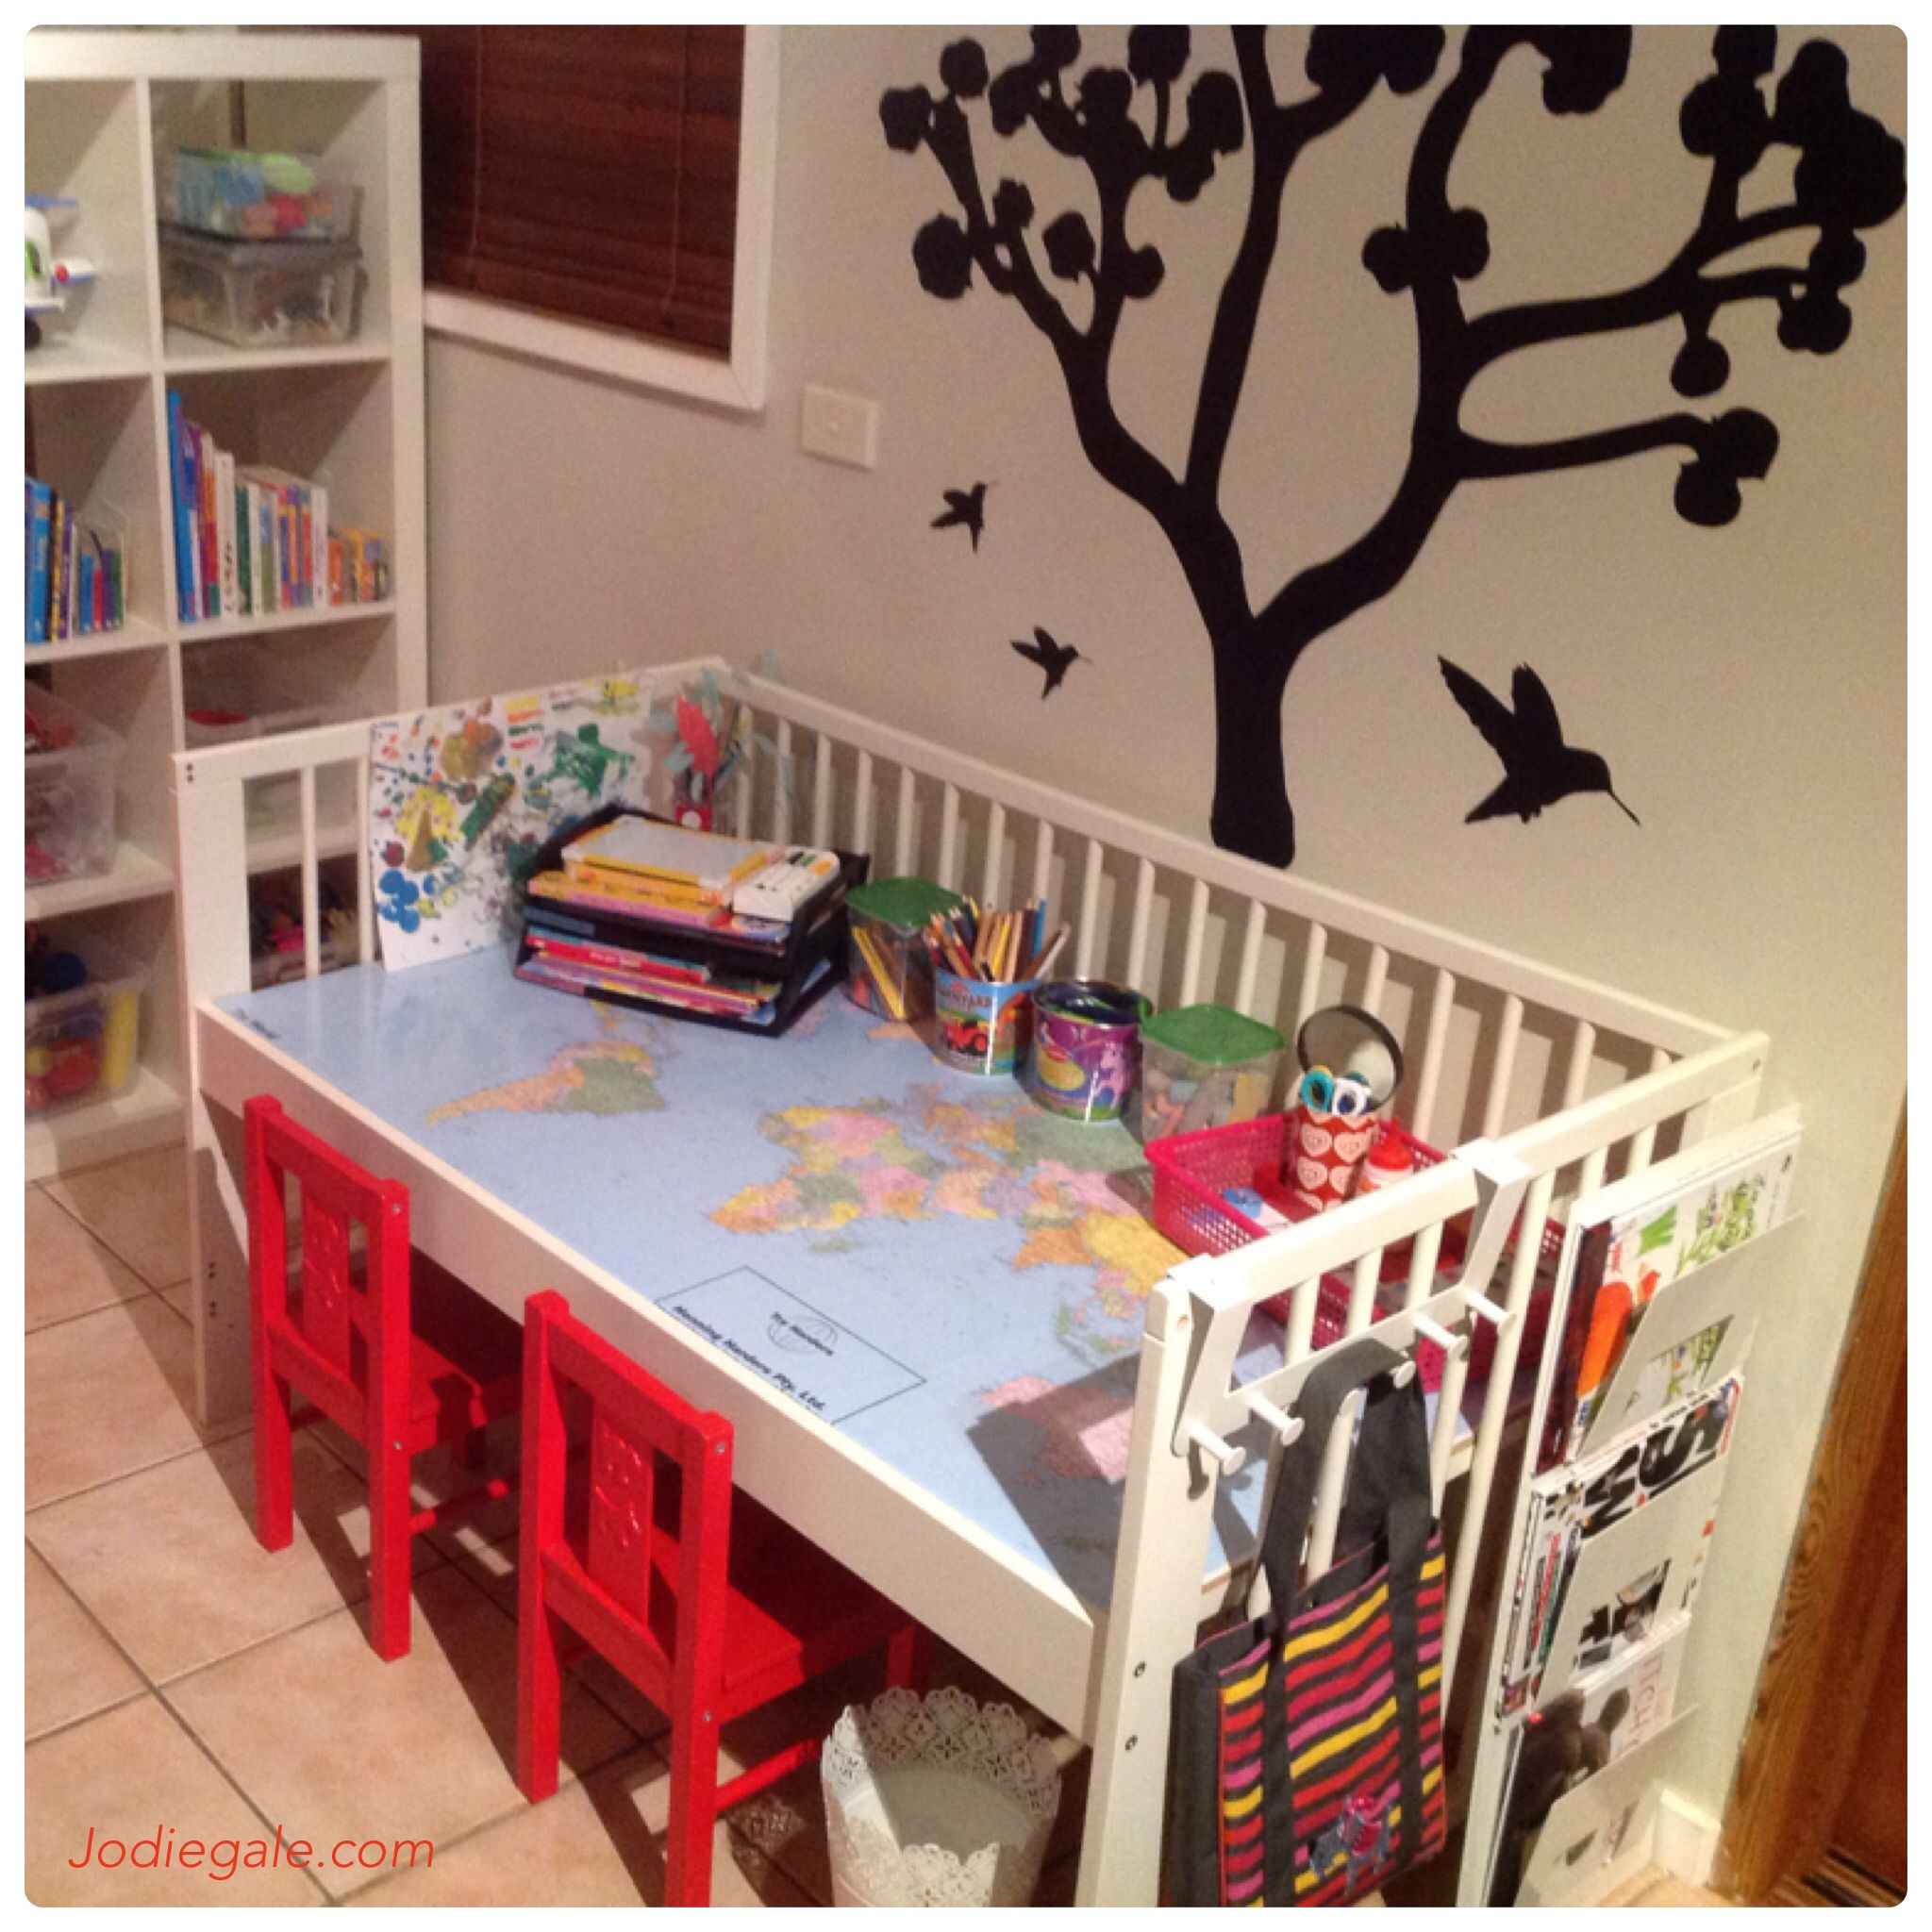 I Upcycled The Kidsu0027 Old Cot Into A Desk Using IKEA Cot And Other Items